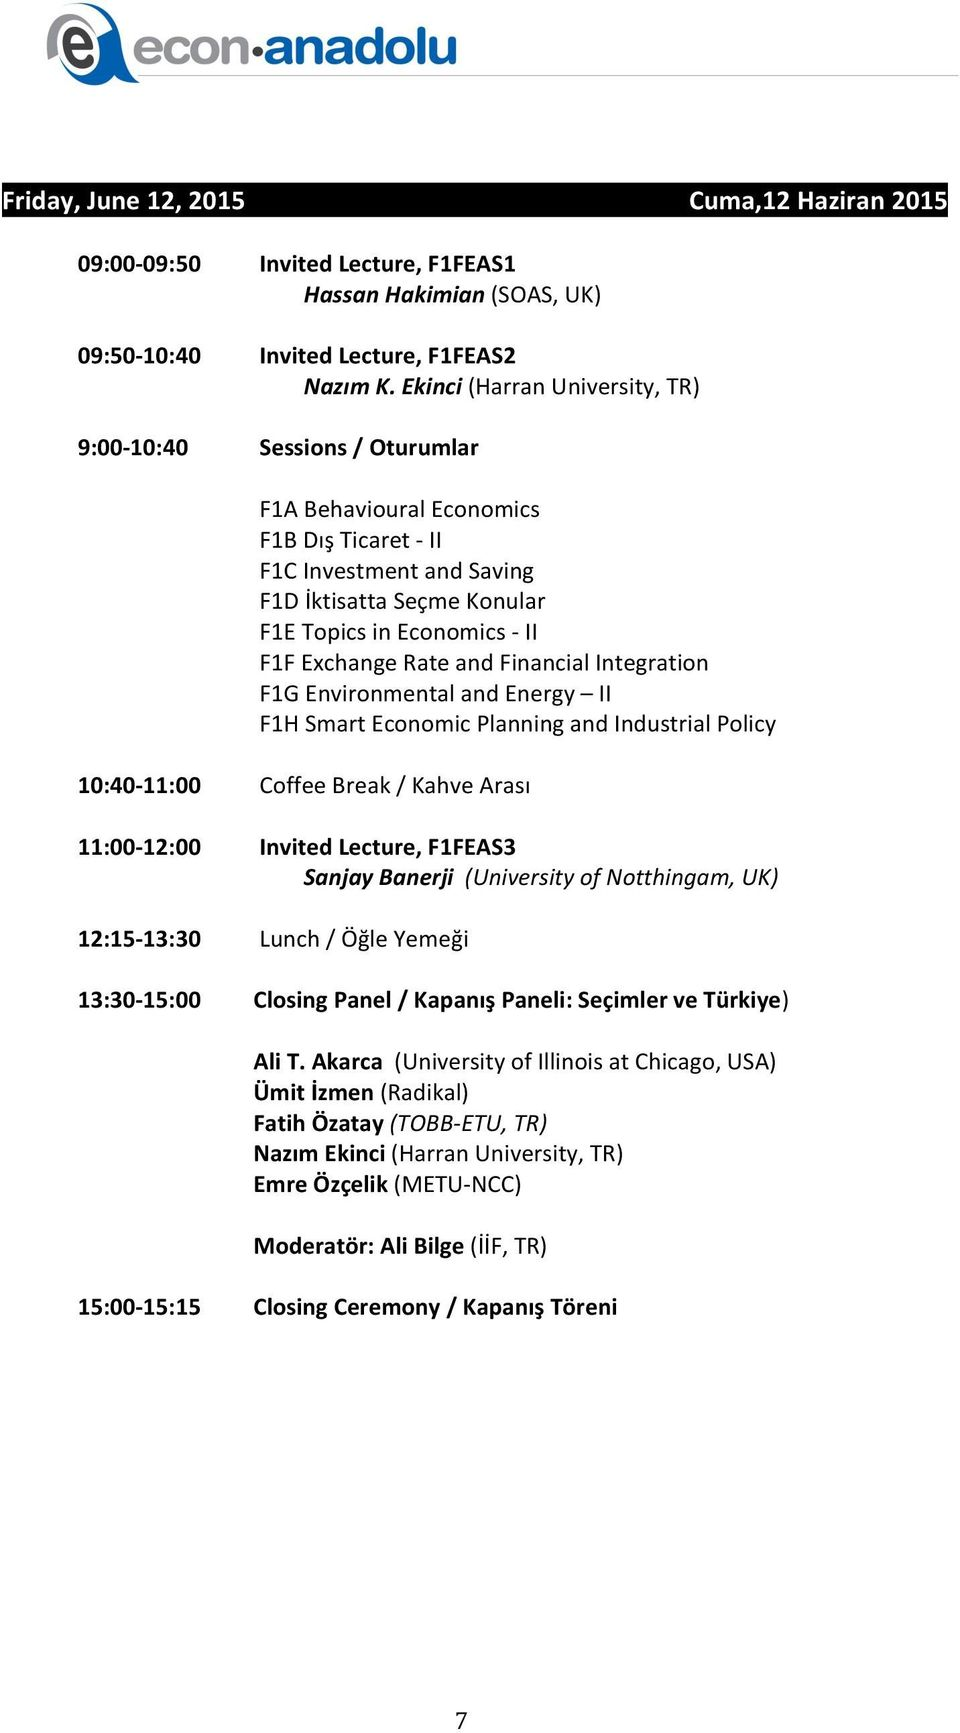 and Financial Integration F1G Environmental and Energy II F1H Smart Economic Planning and Industrial Policy 10:40-11:00 11:00-12:00 12:15-13:30 13:30-15:00 Coffee Break / Kahve Arası Invited Lecture,